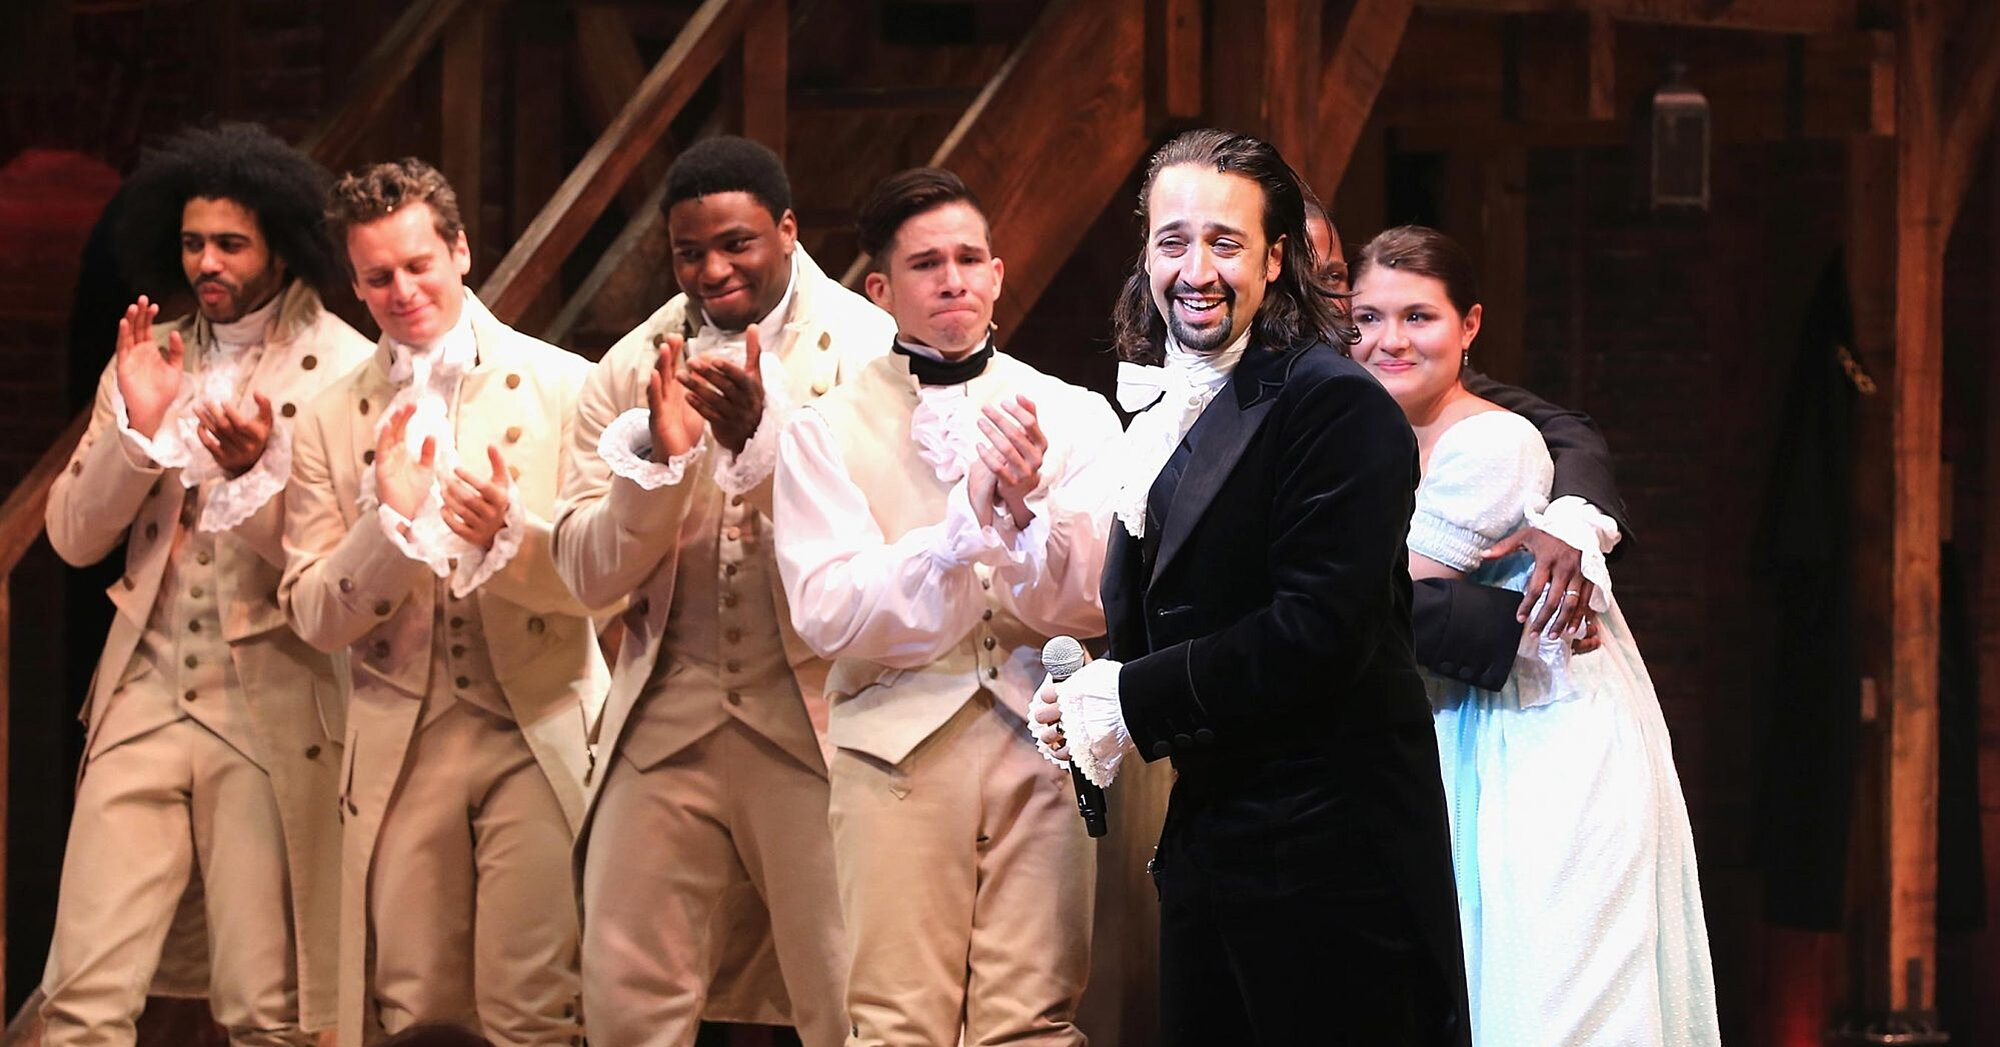 'Hamilton' stars and creative team share memories of working on show during Twitter watch party